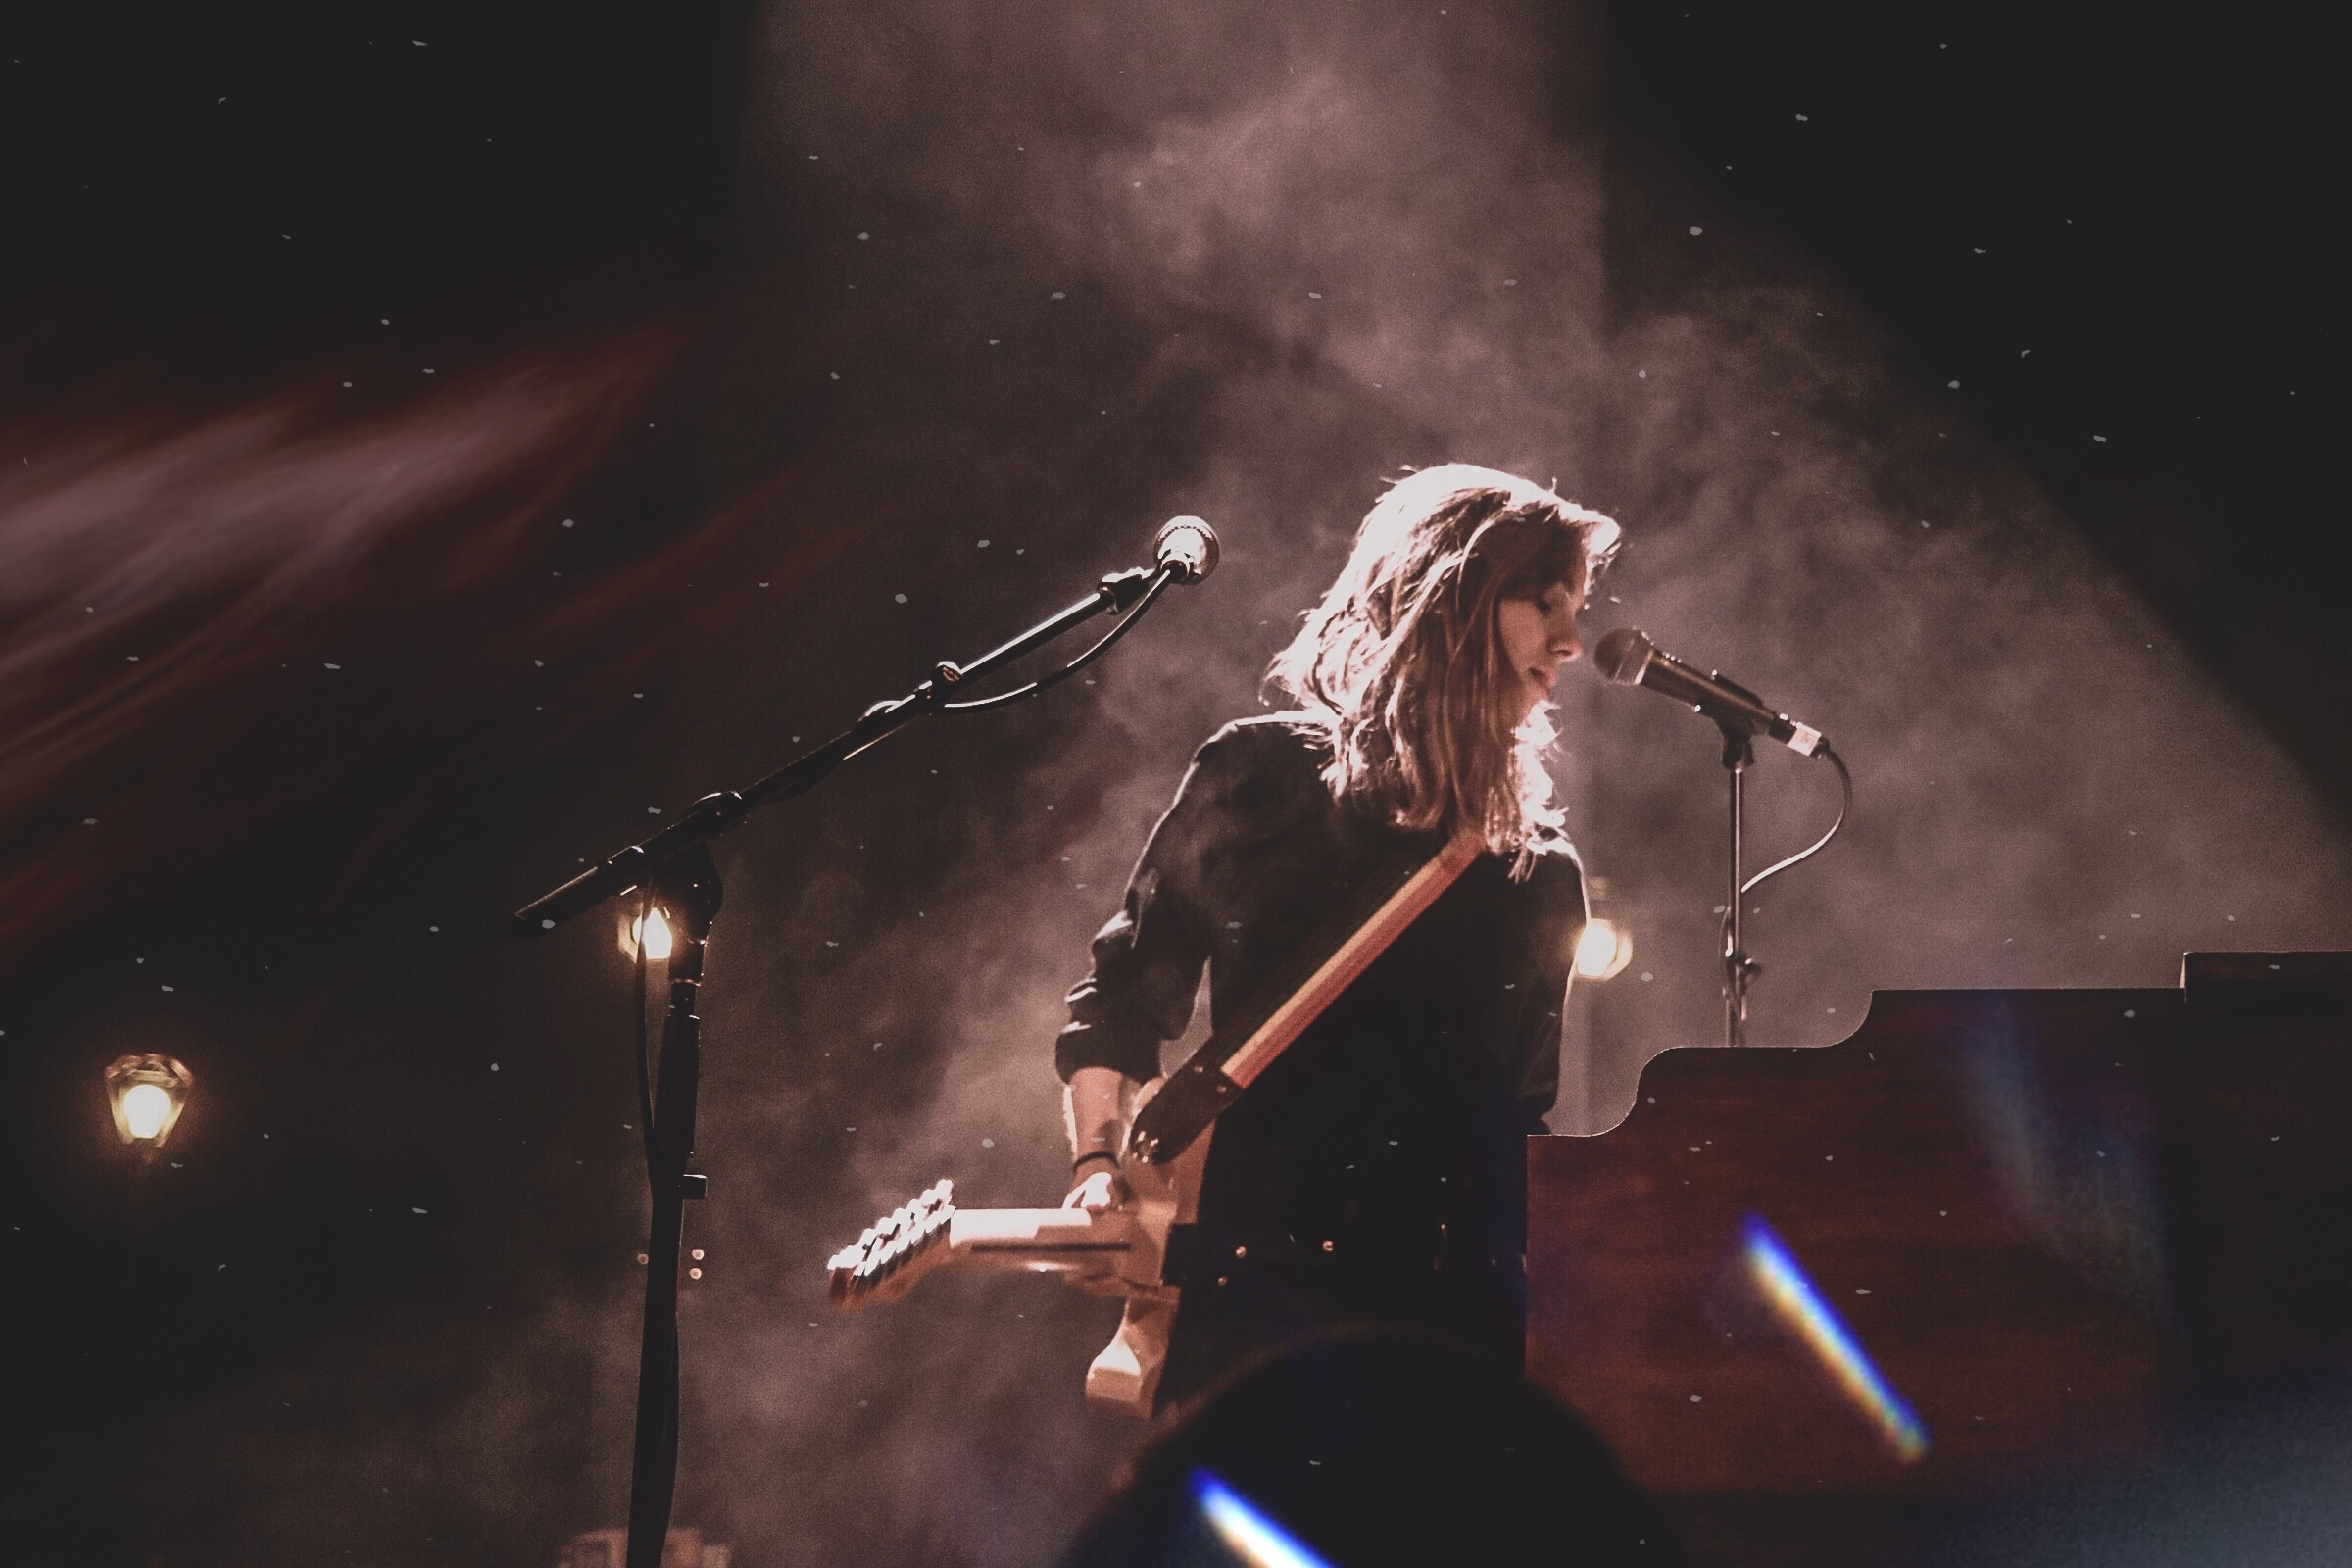 Copy of JULIEN BAKER SHOW REVIEW